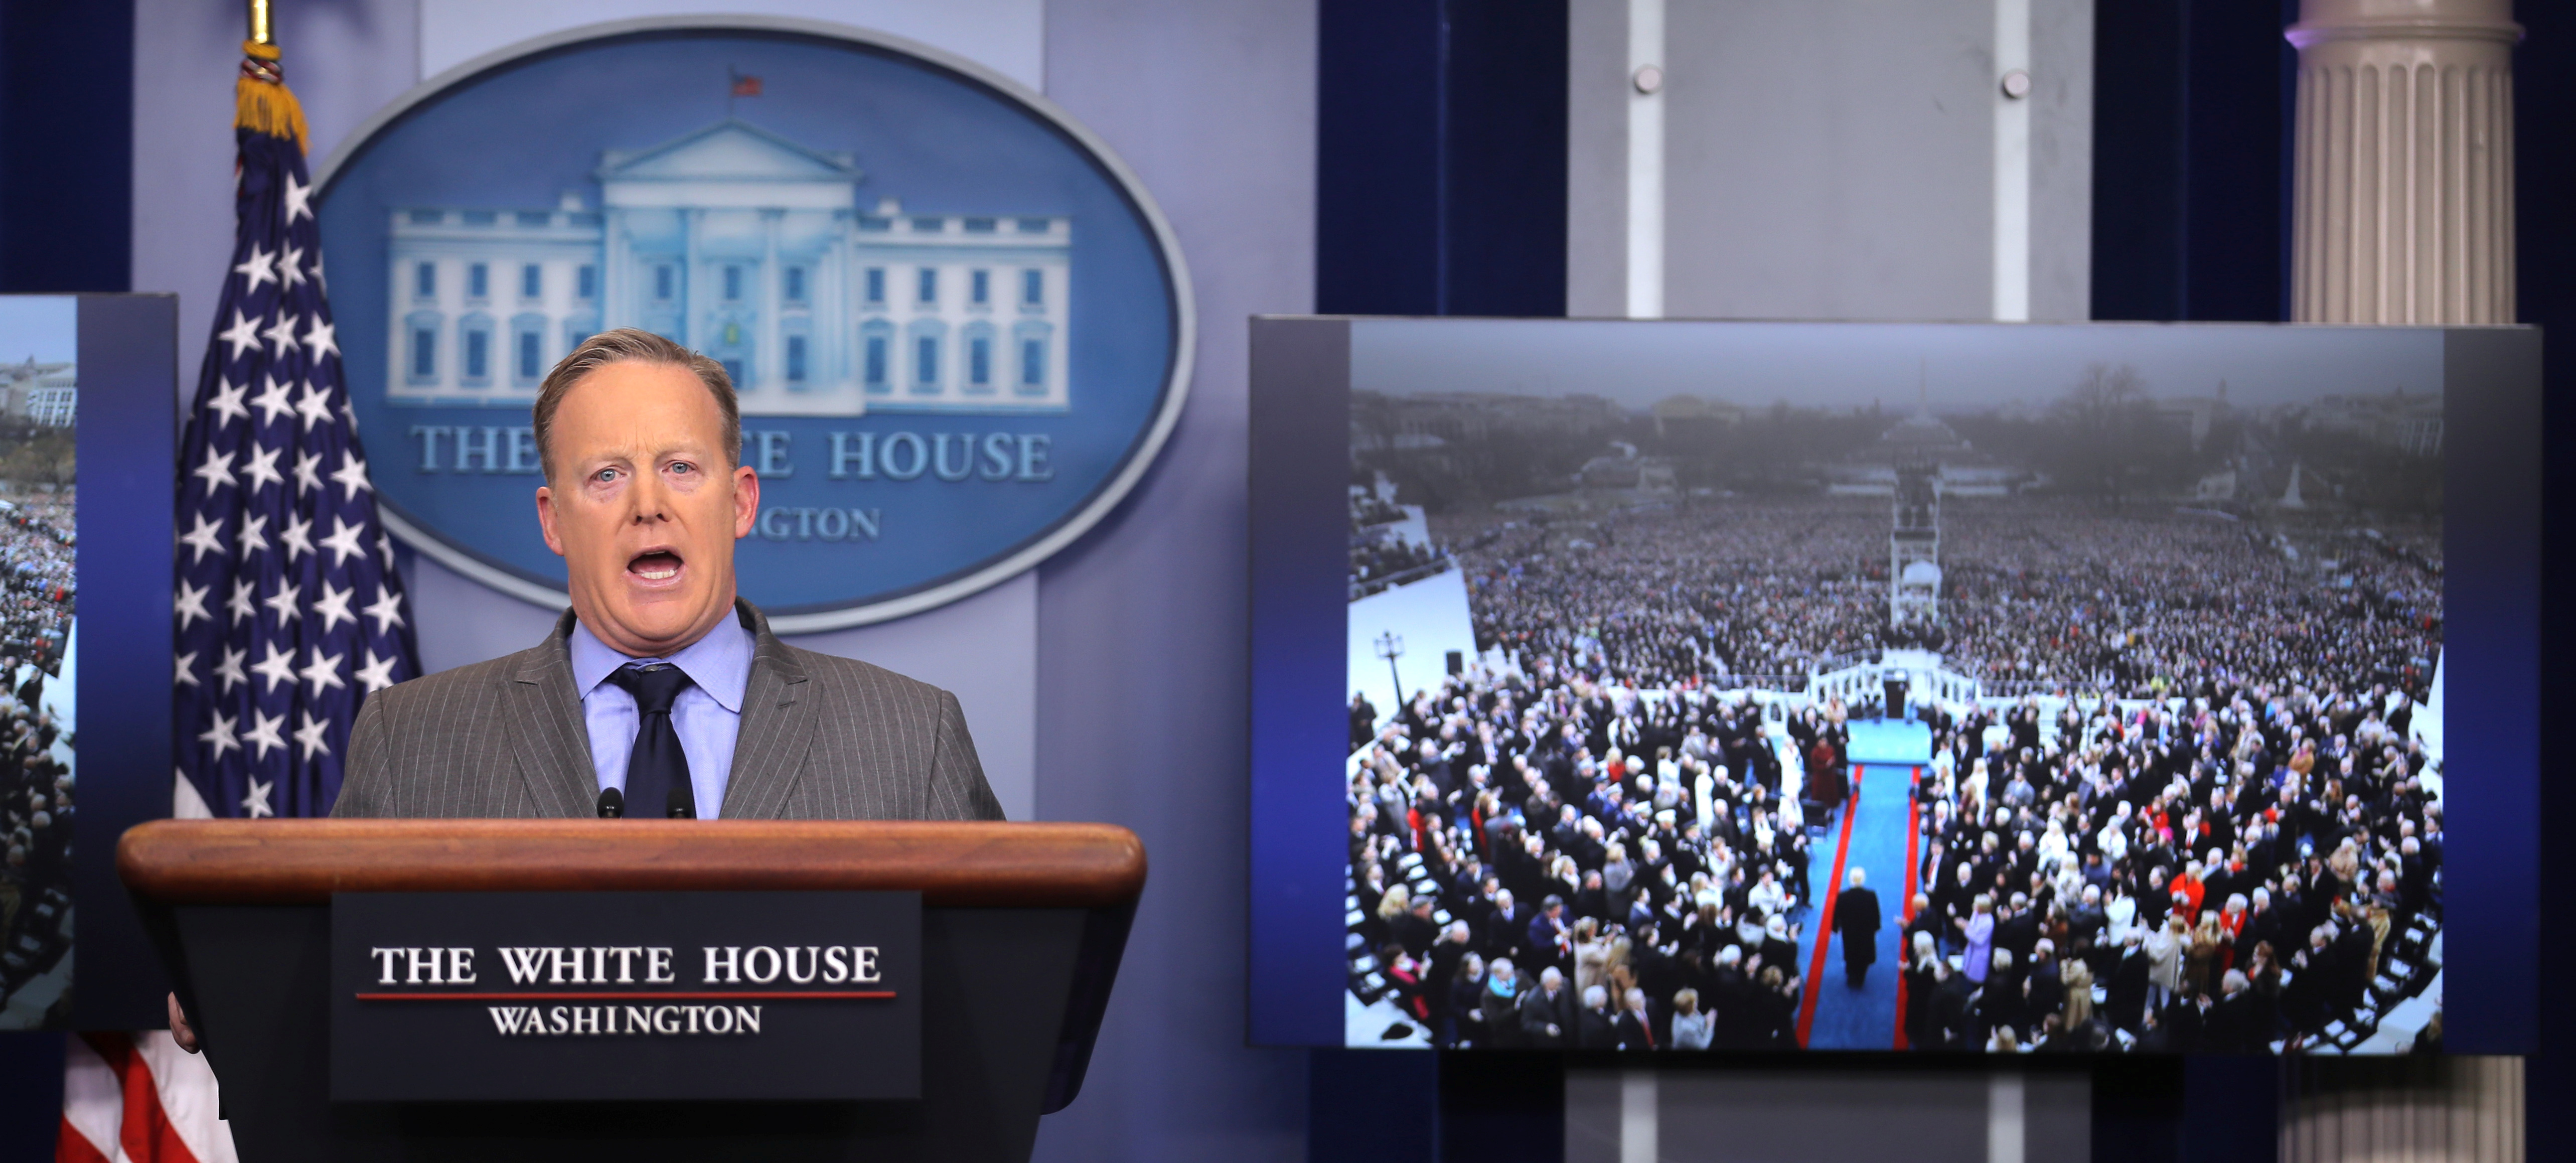 sean spicer on donald trump inauguration crowd size